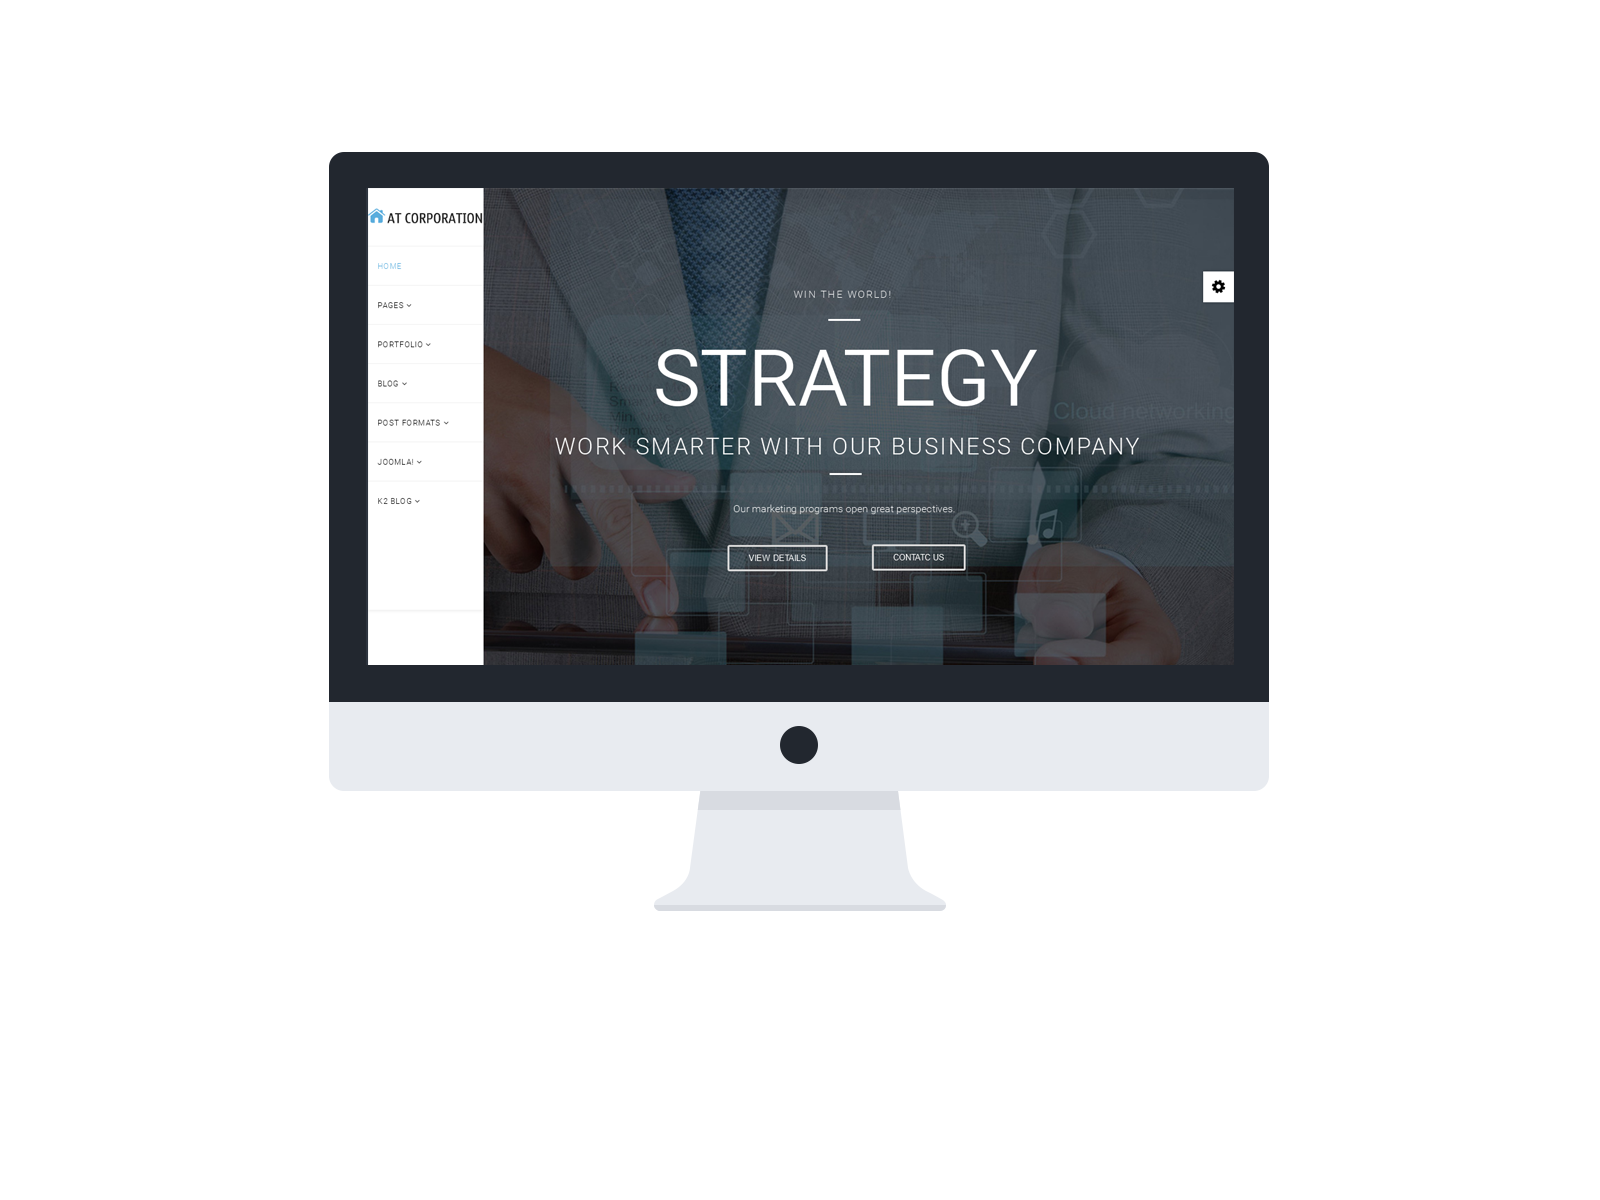 at-corpoation-company-template